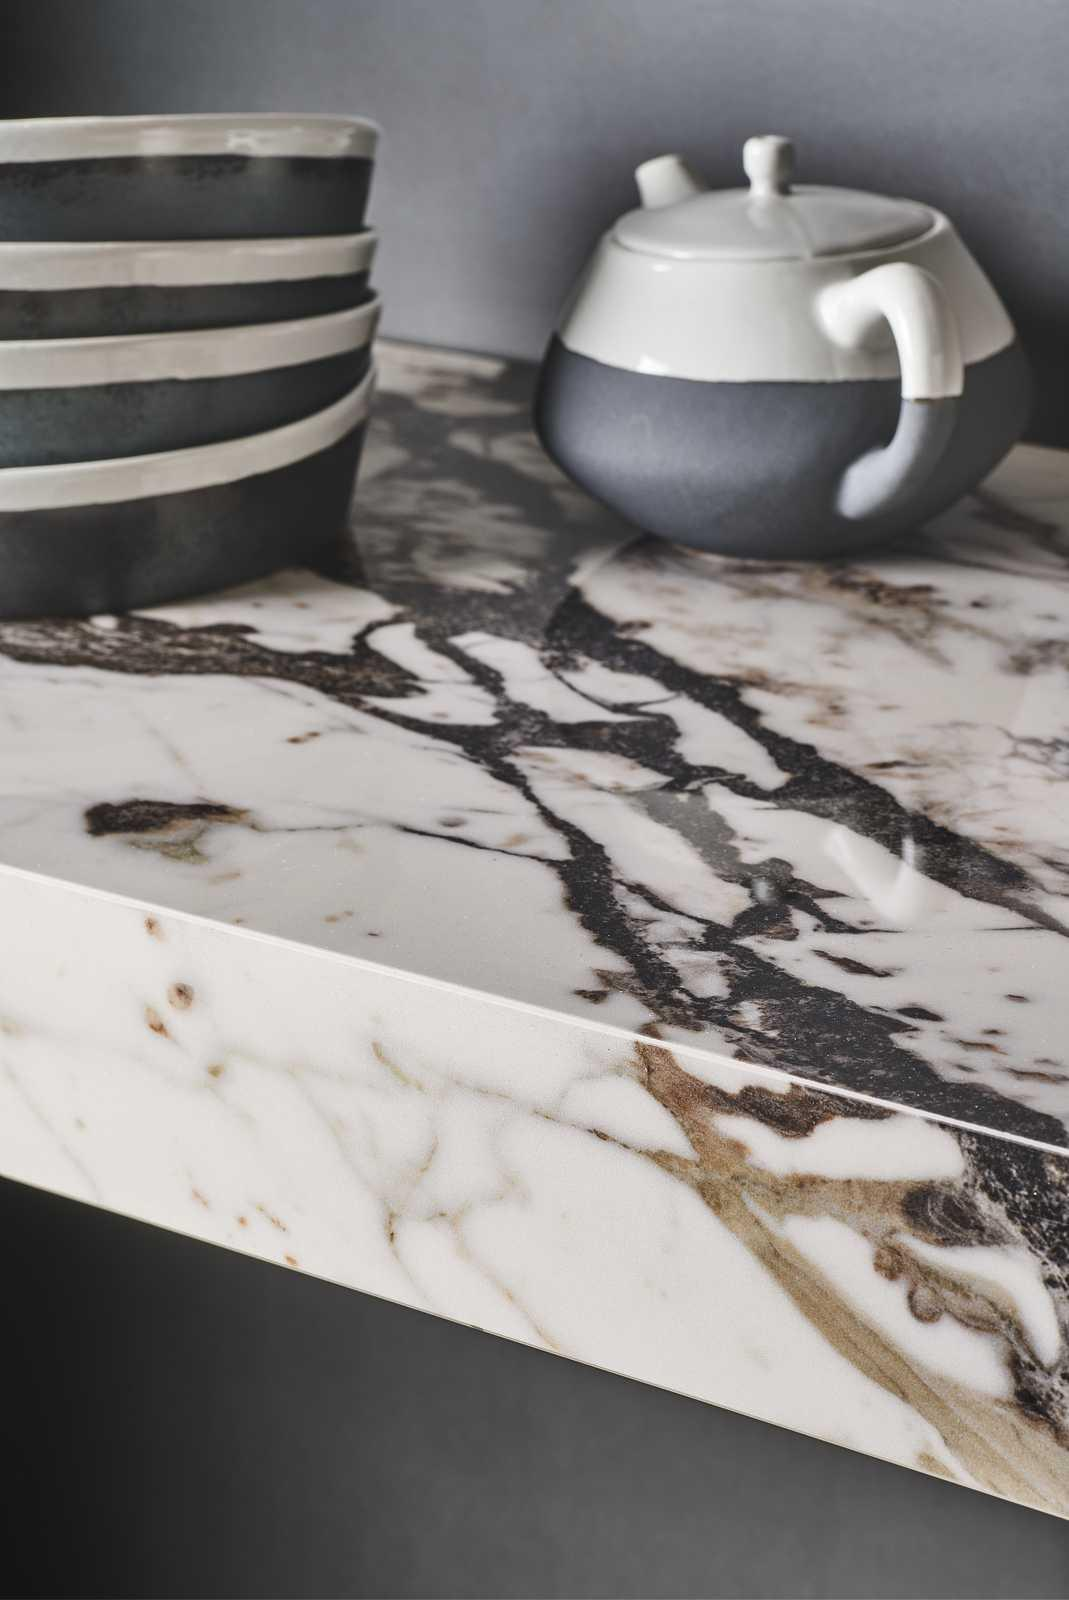 Grande marble look - Marble Effect - Kitchen